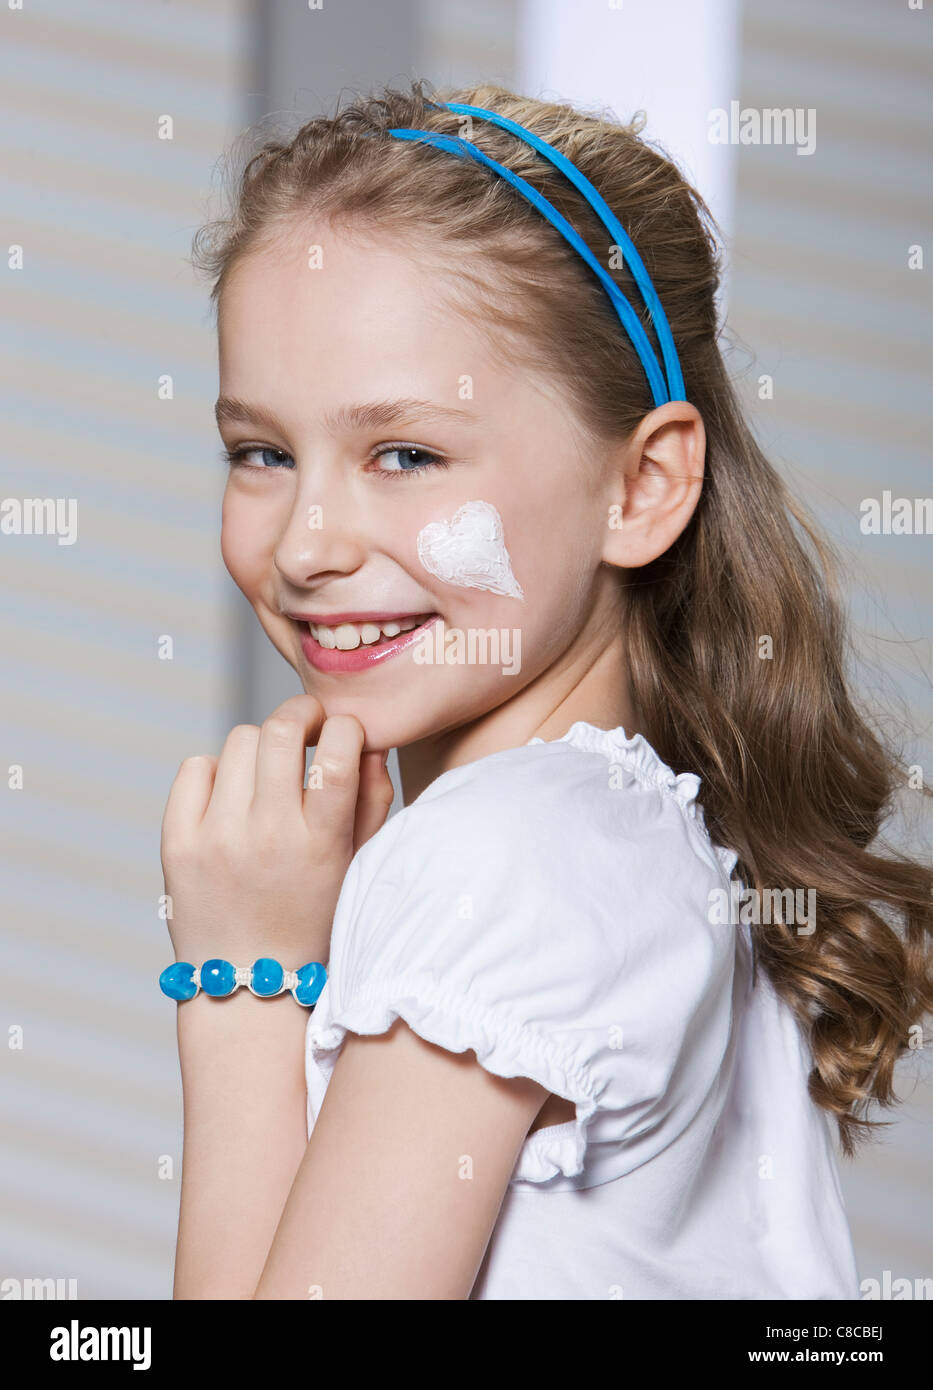 Girl with heart-shaped moisturizer - Stock Image